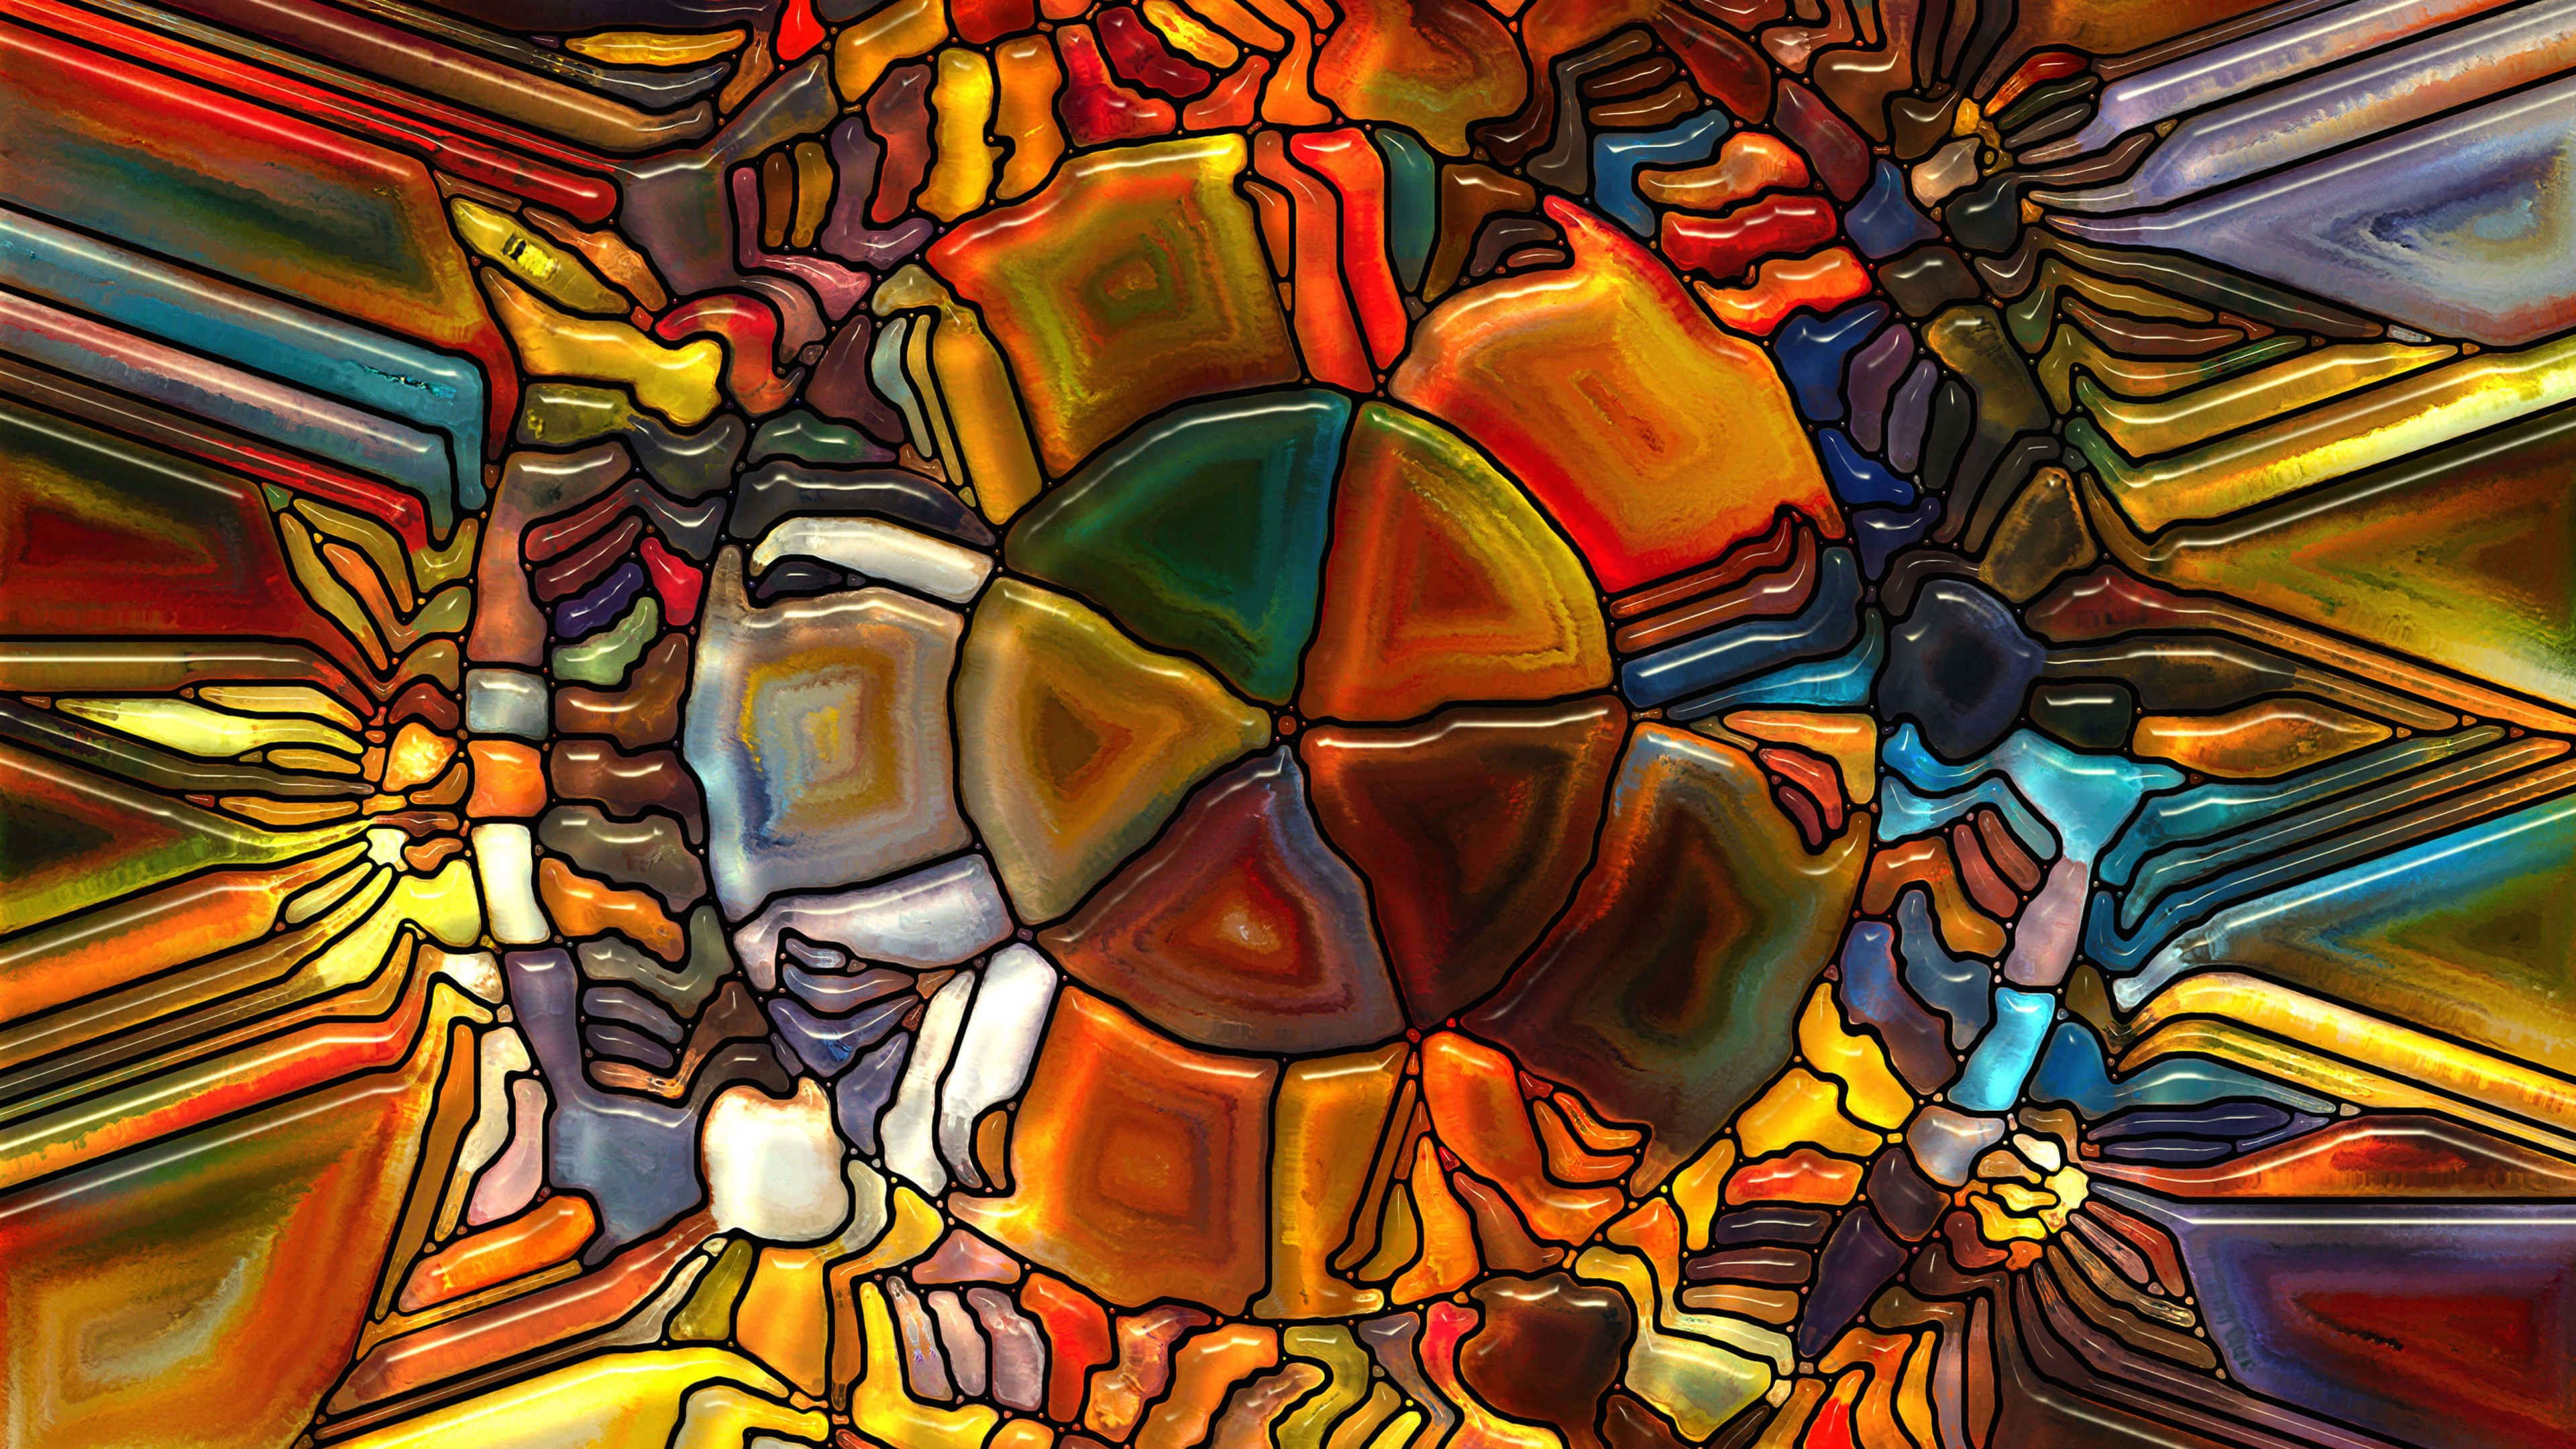 Psychedelic Stained Glass Wallpaper for Desktop 4K 3840x2160